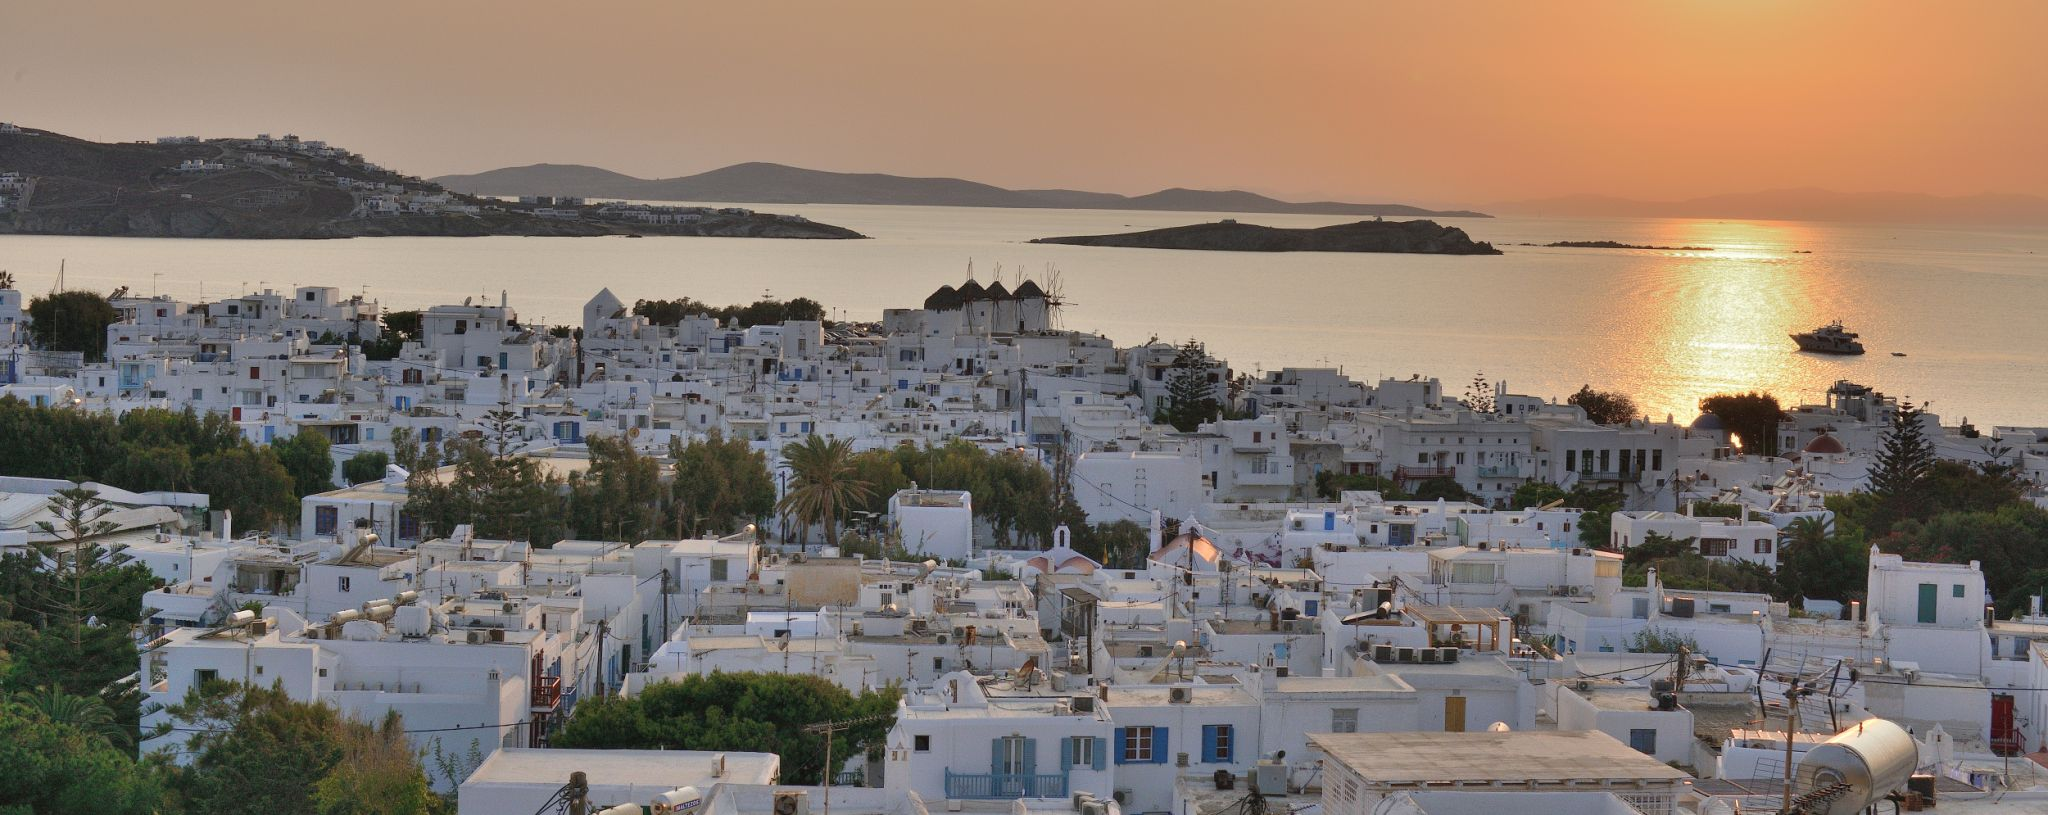 View over Mykonos town at sunset, Greece